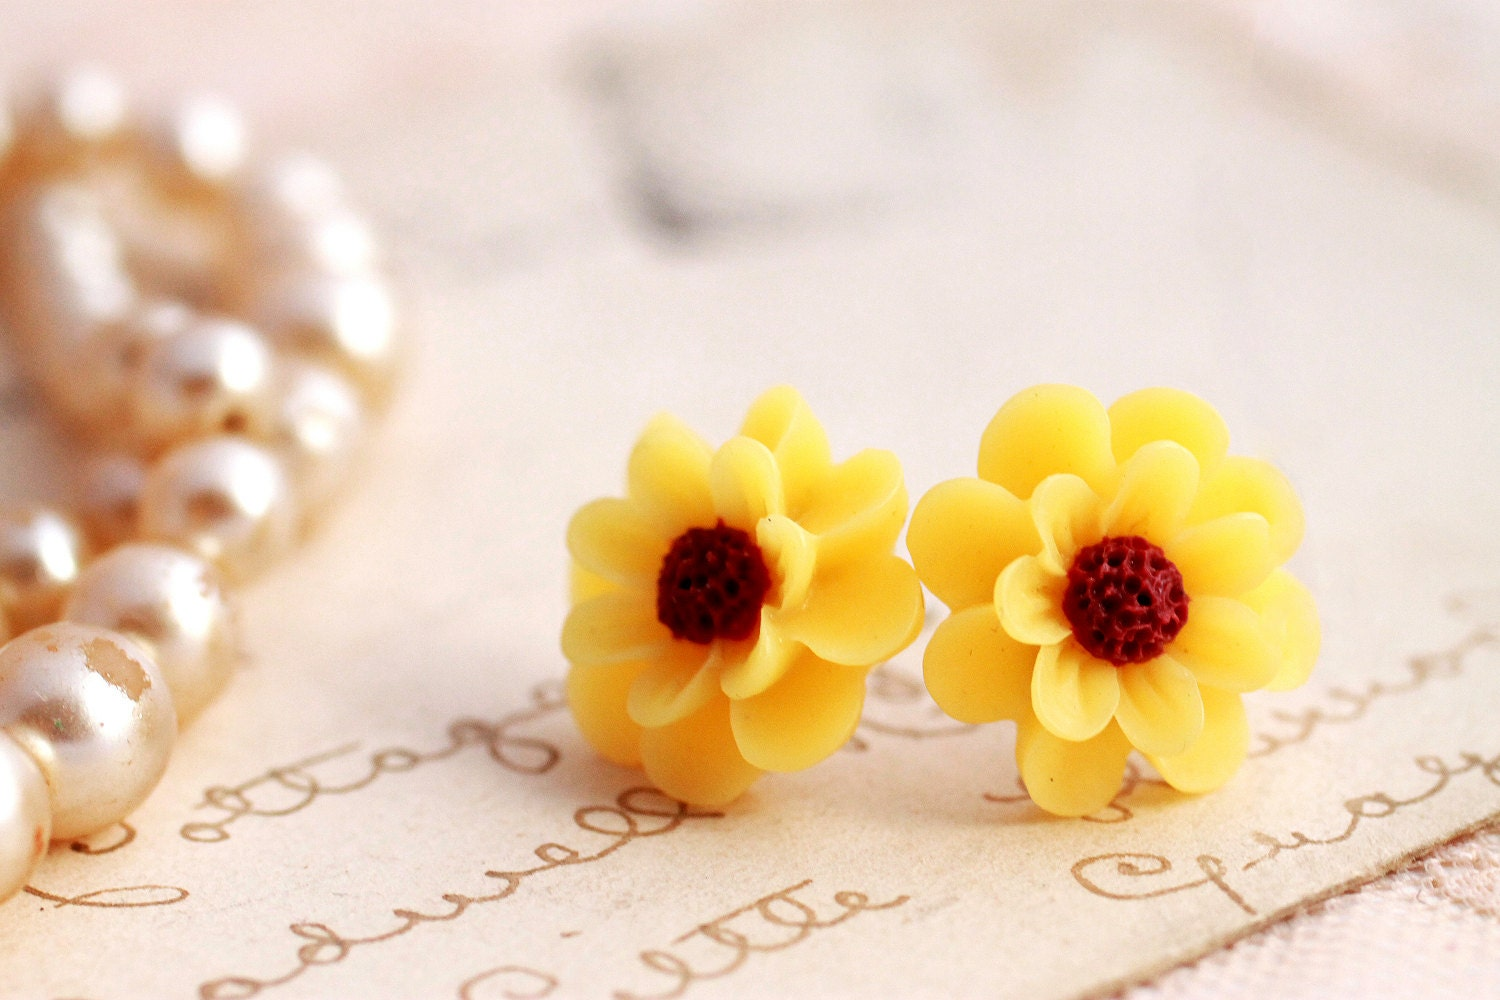 yellow daisy flower earrings, sunflower earrings, flower stud earrings, colorful earrings.daisy flower earrings, vintage earrings, beautiful earring, etsy store , beautyfoodlfie.blogspot.com